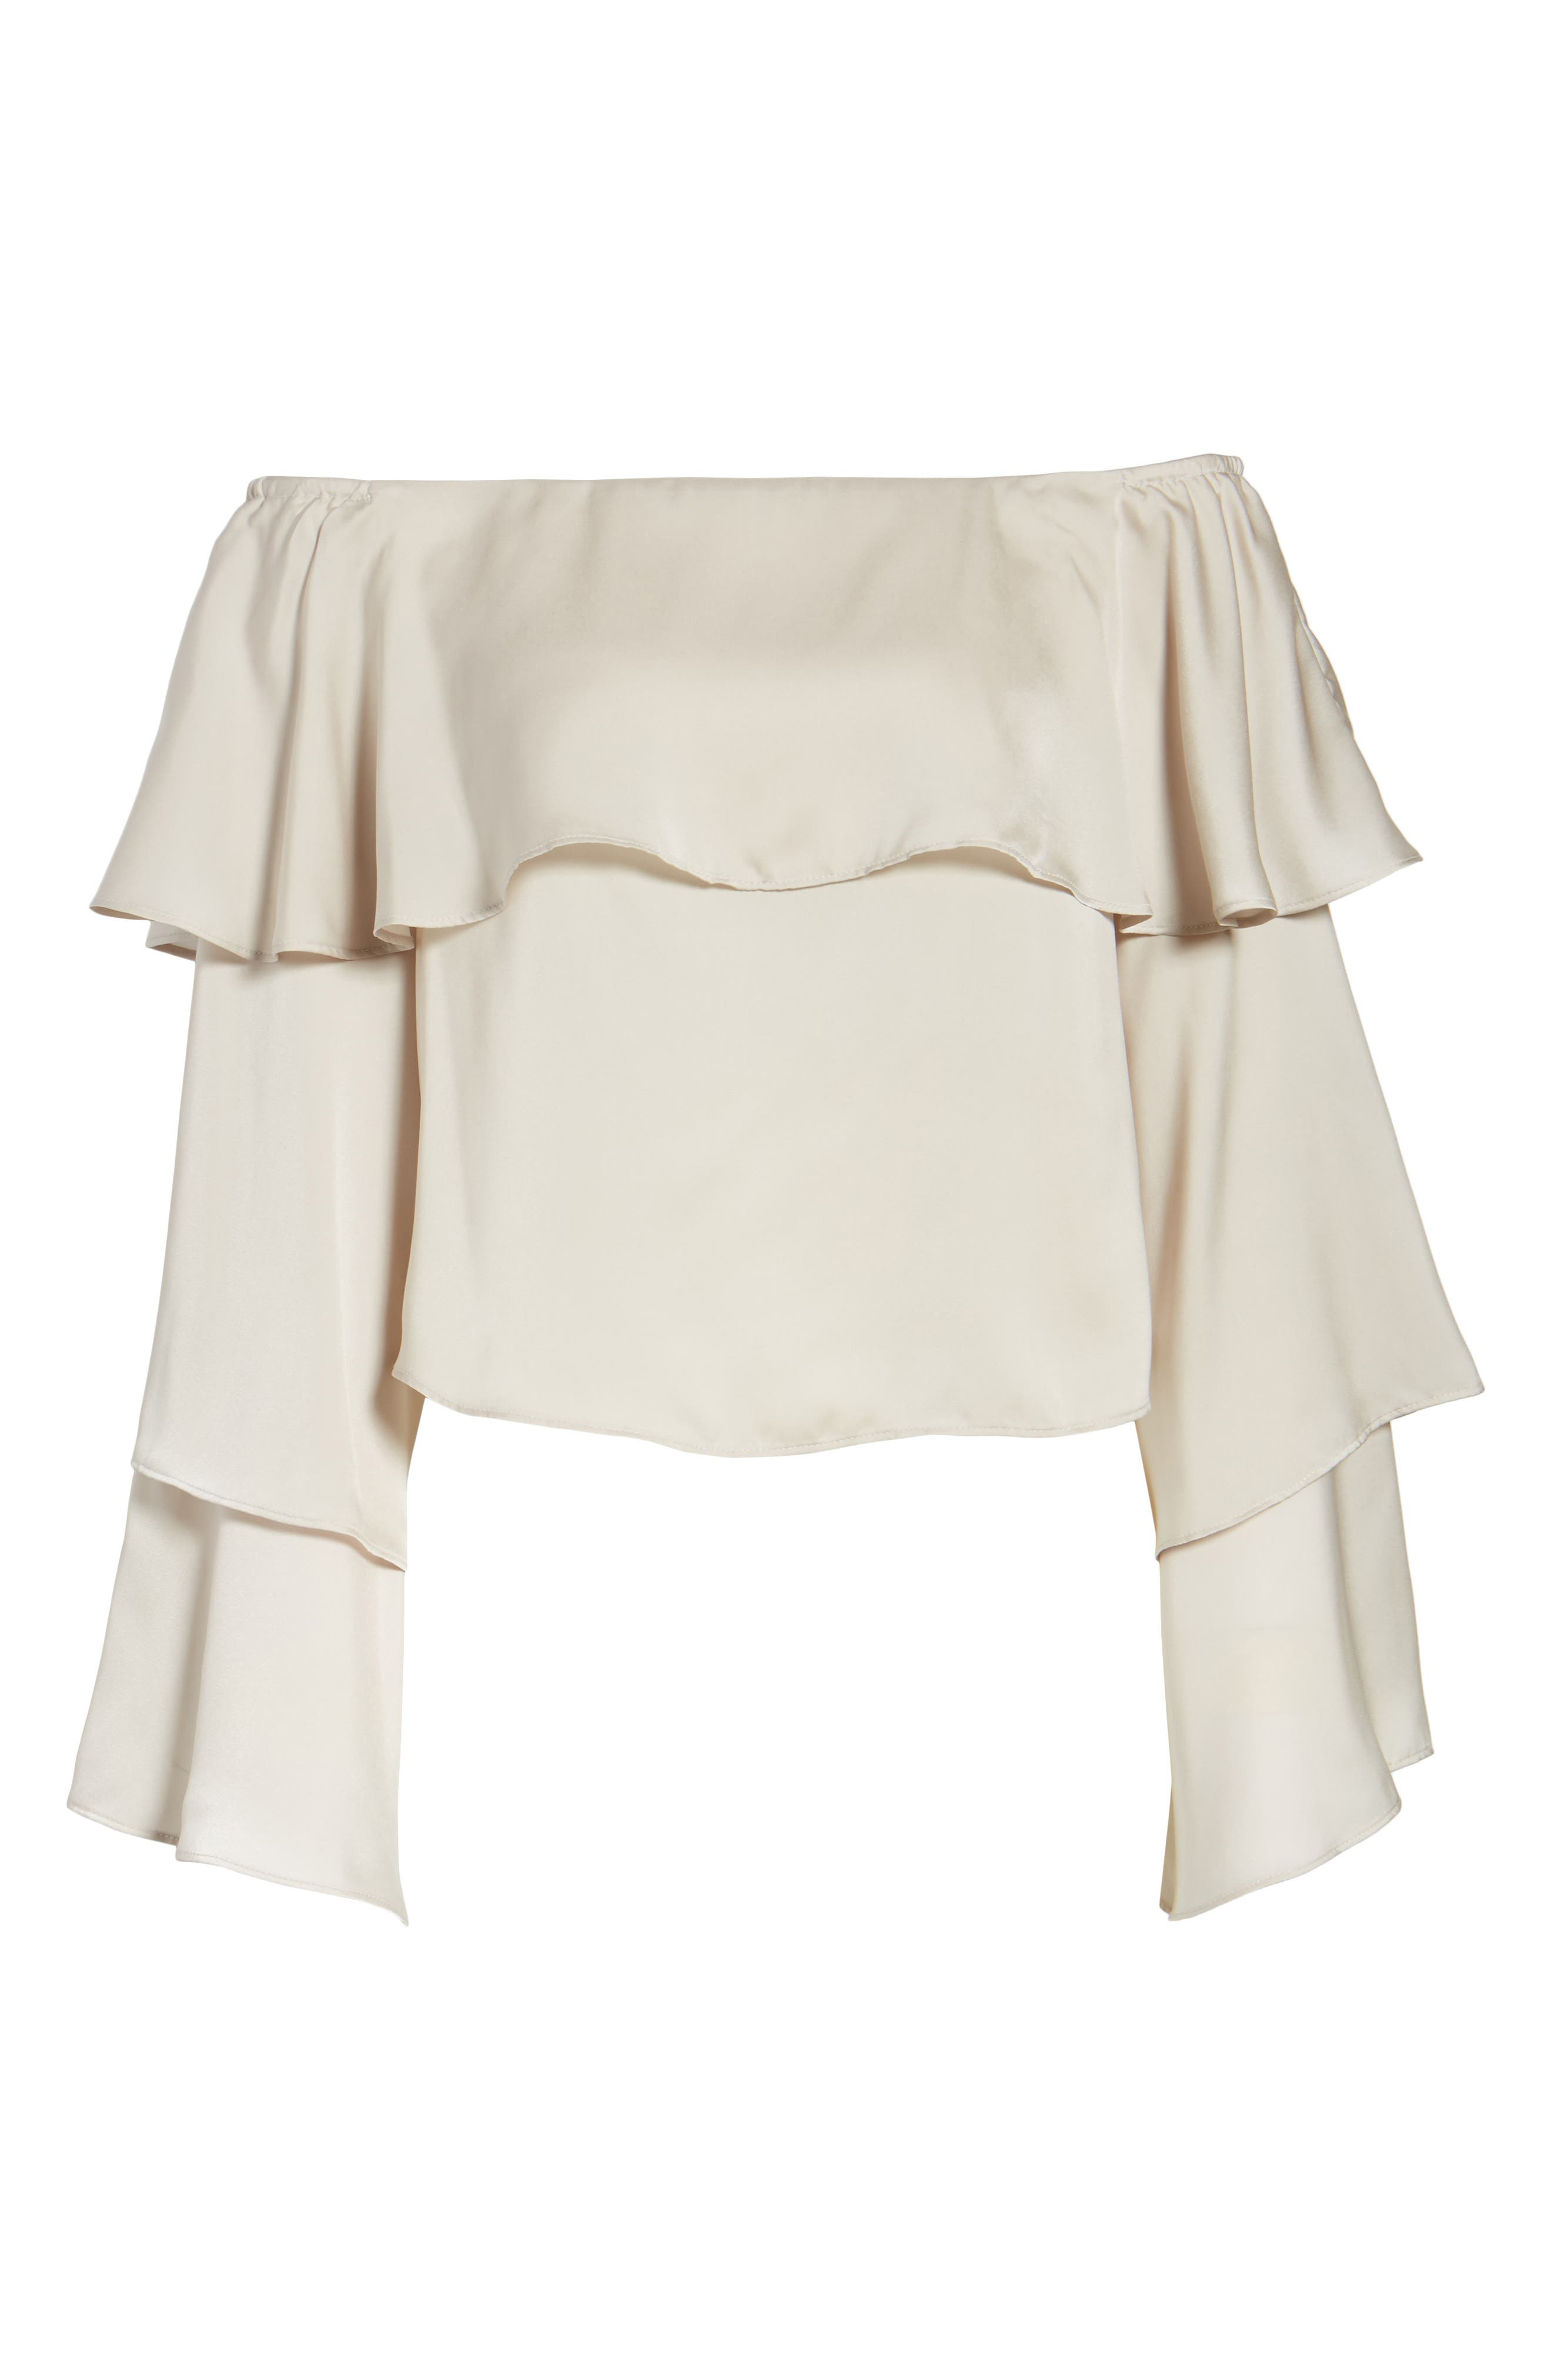 Off the Shoulder Ruffle Top,                             Alternate thumbnail 6, color,                             050